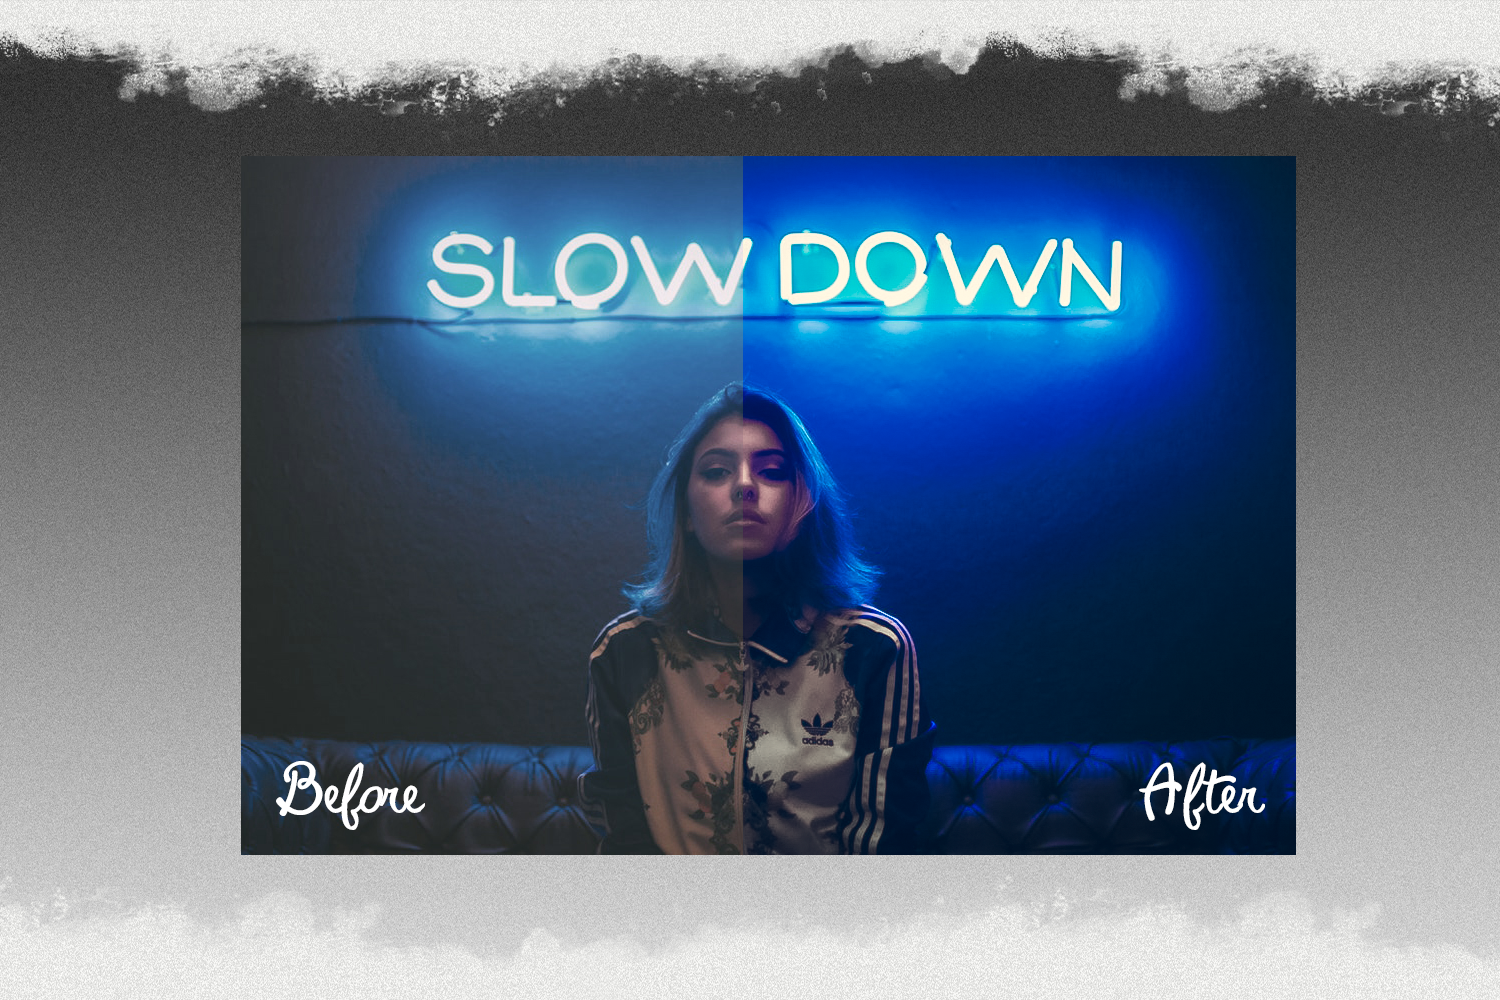 Neon preset lightroom mobile pc instagram effects filter example image 3